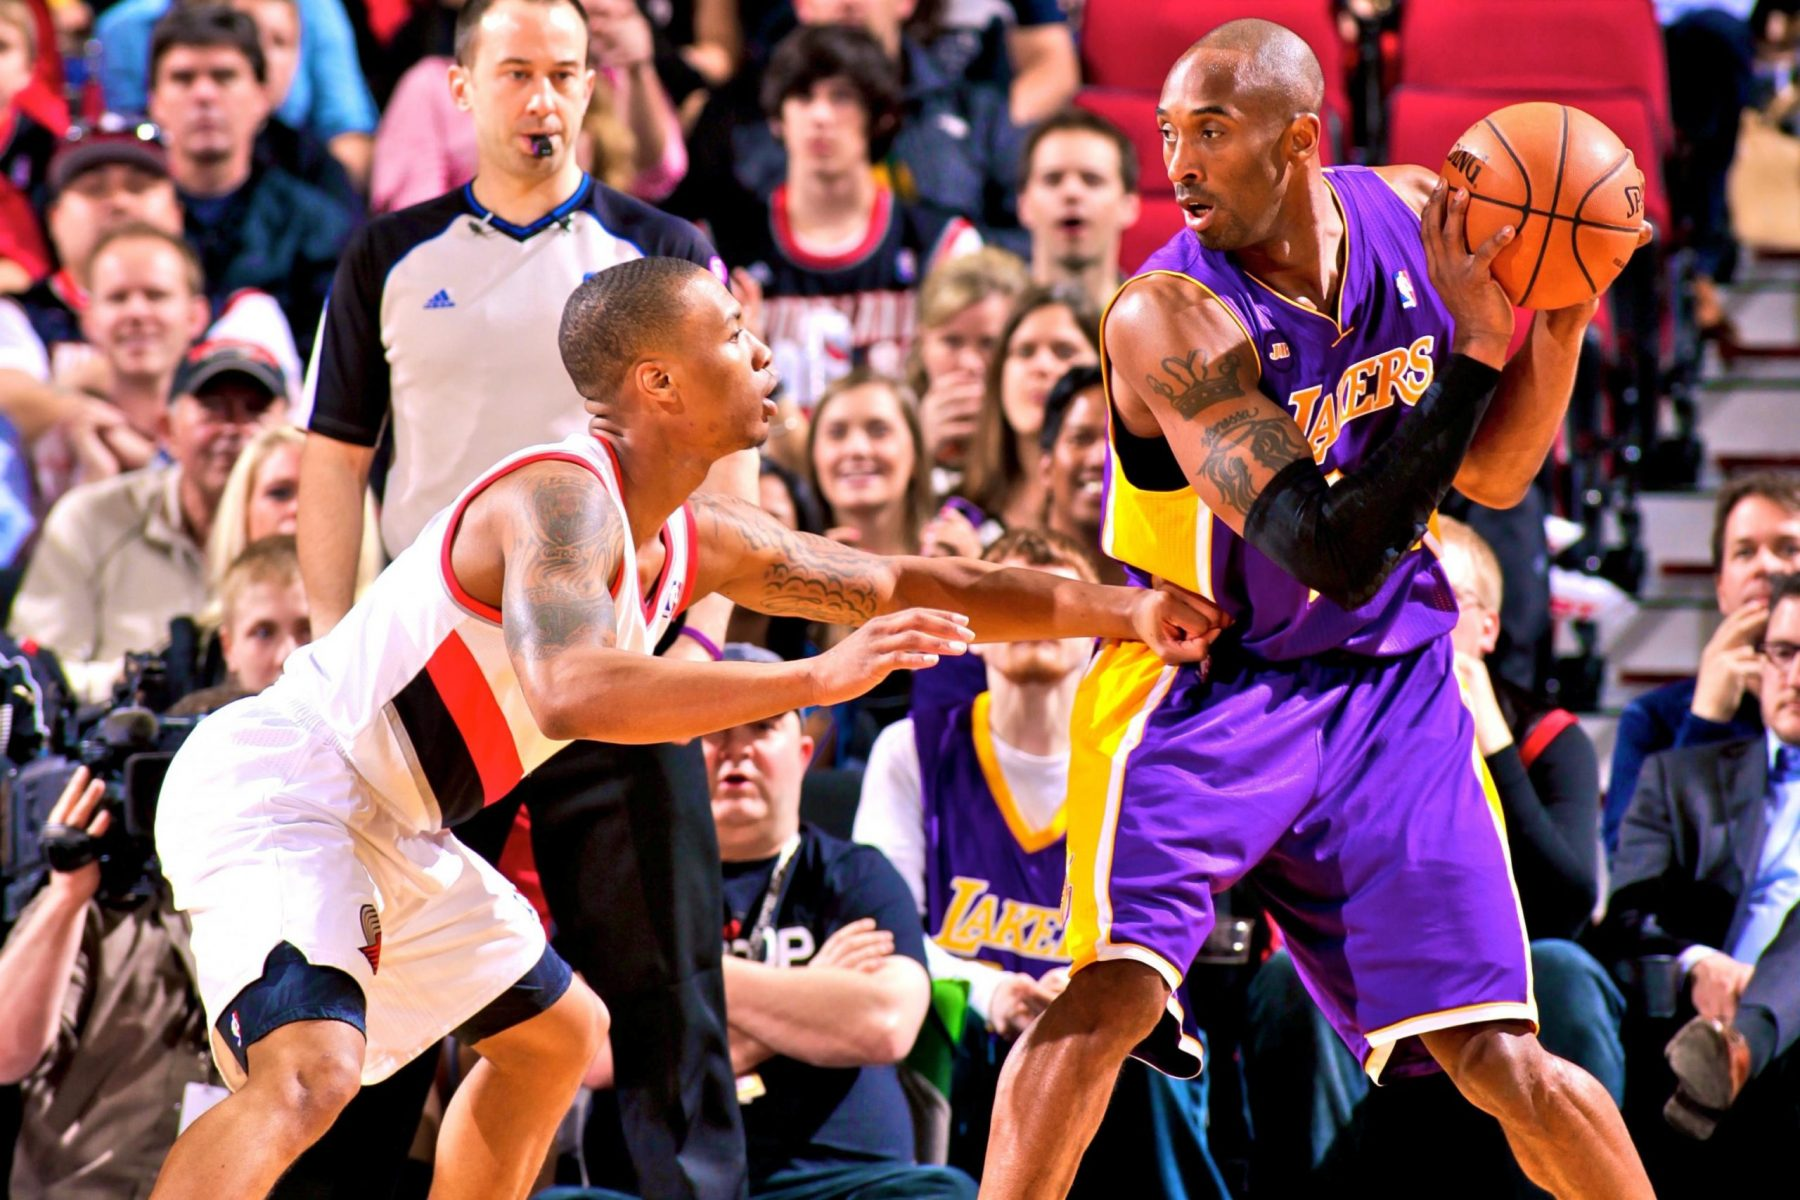 Damian Lillard and Kobe Bryant